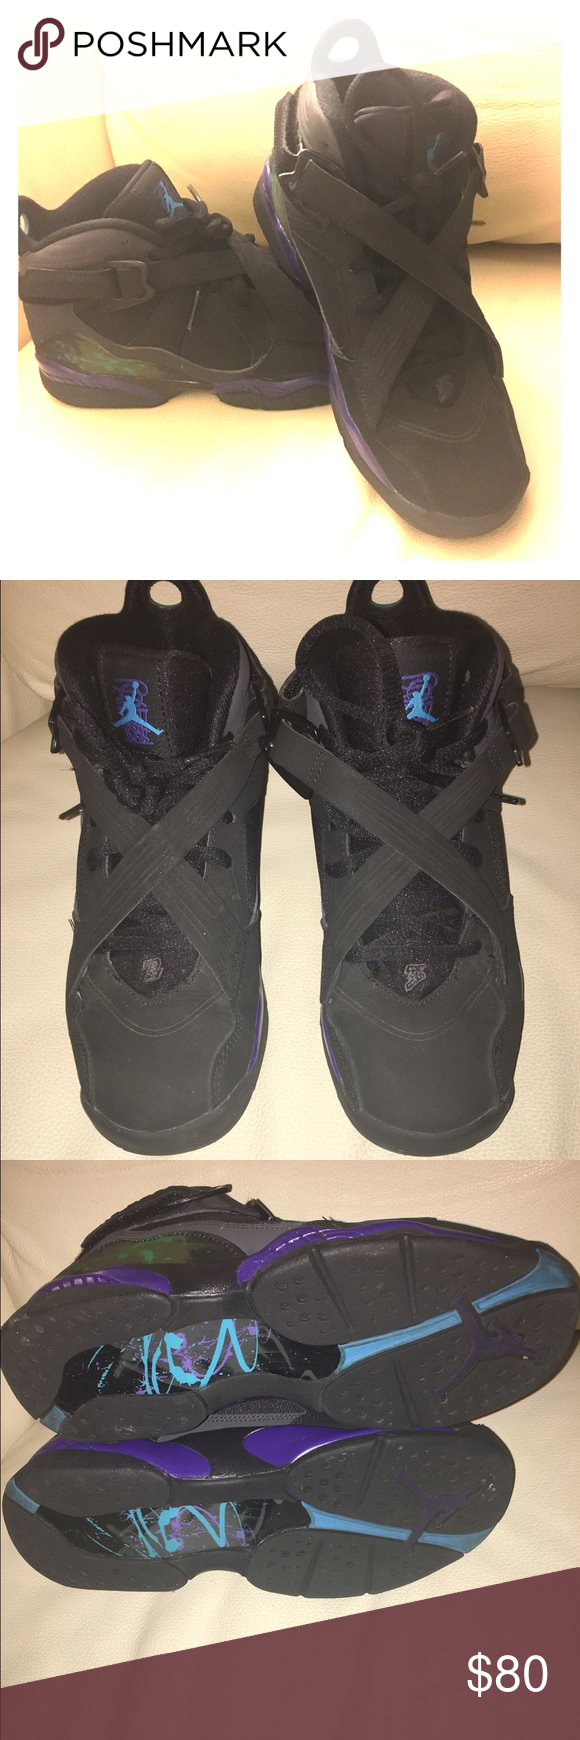 554b0b65955f Jordan 8 s WORN ONE TIME!!! These are a boys size 4 which fits a ...